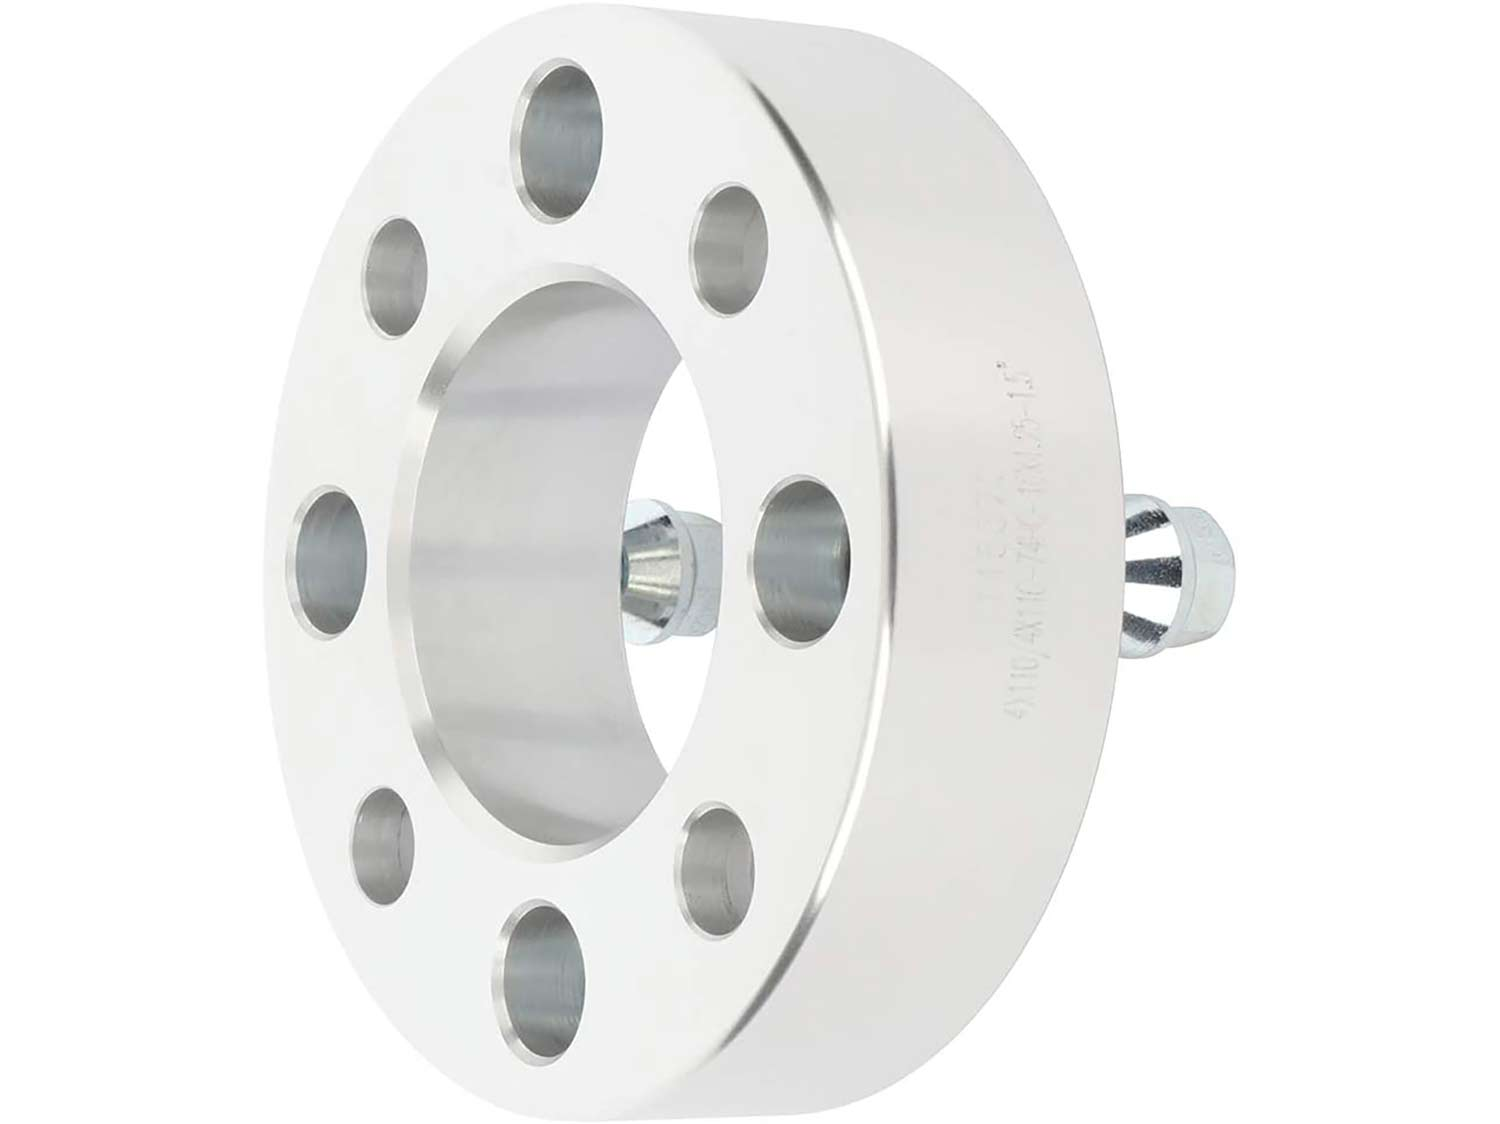 A wheel spacer for an ATV on a white background.